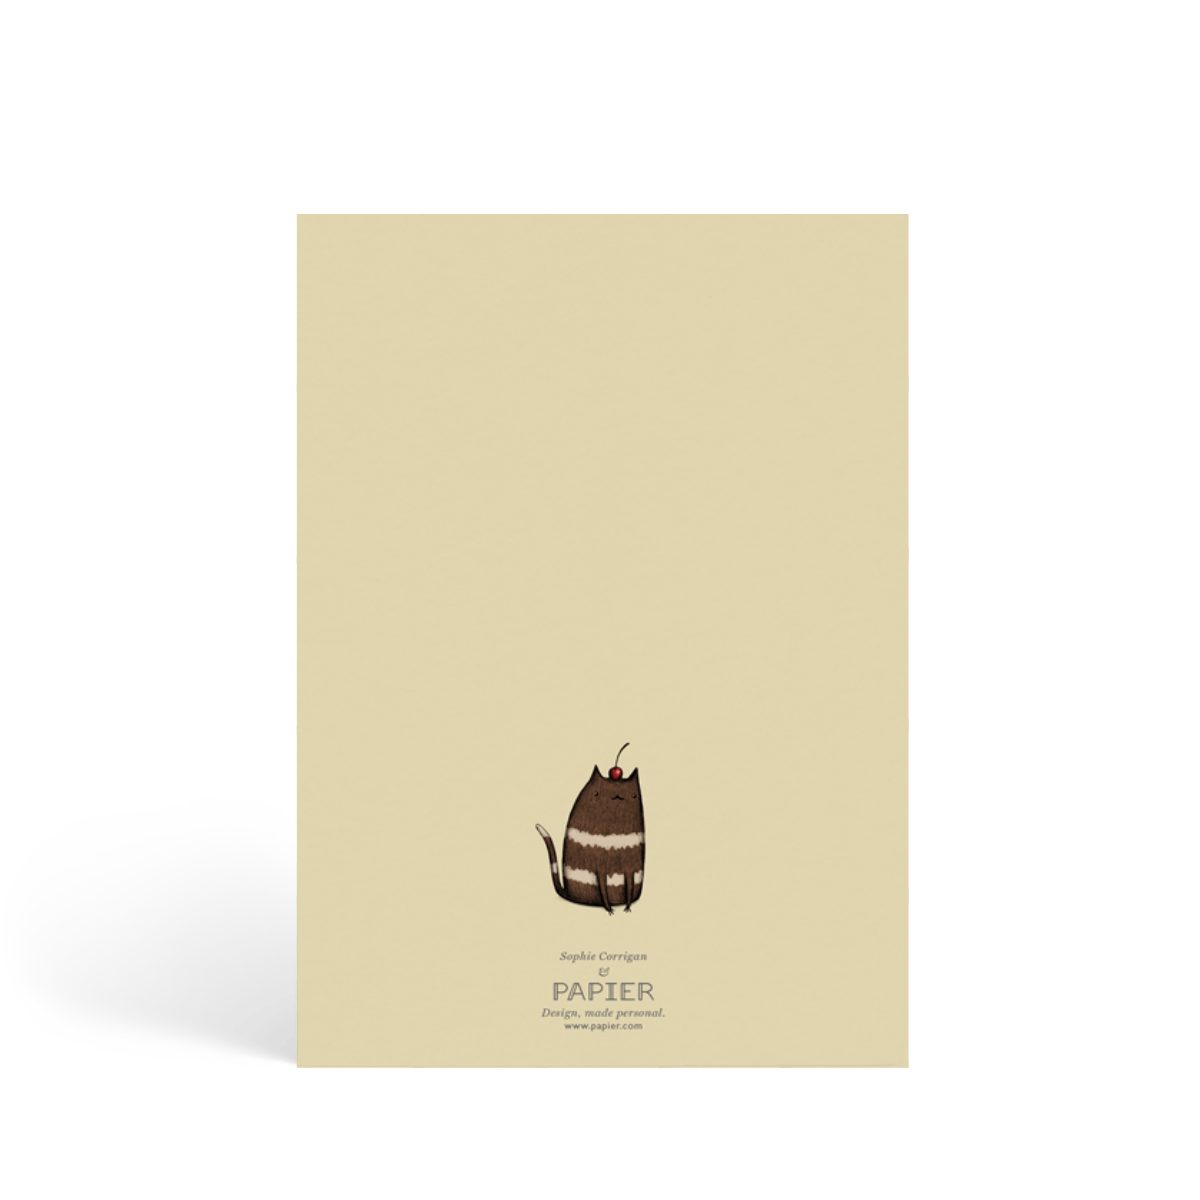 Https%3a%2f%2fwww.papier.com%2fproduct image%2f51065%2f5%2fblack forest cateau 12507 back 1540293716.png?ixlib=rb 1.1